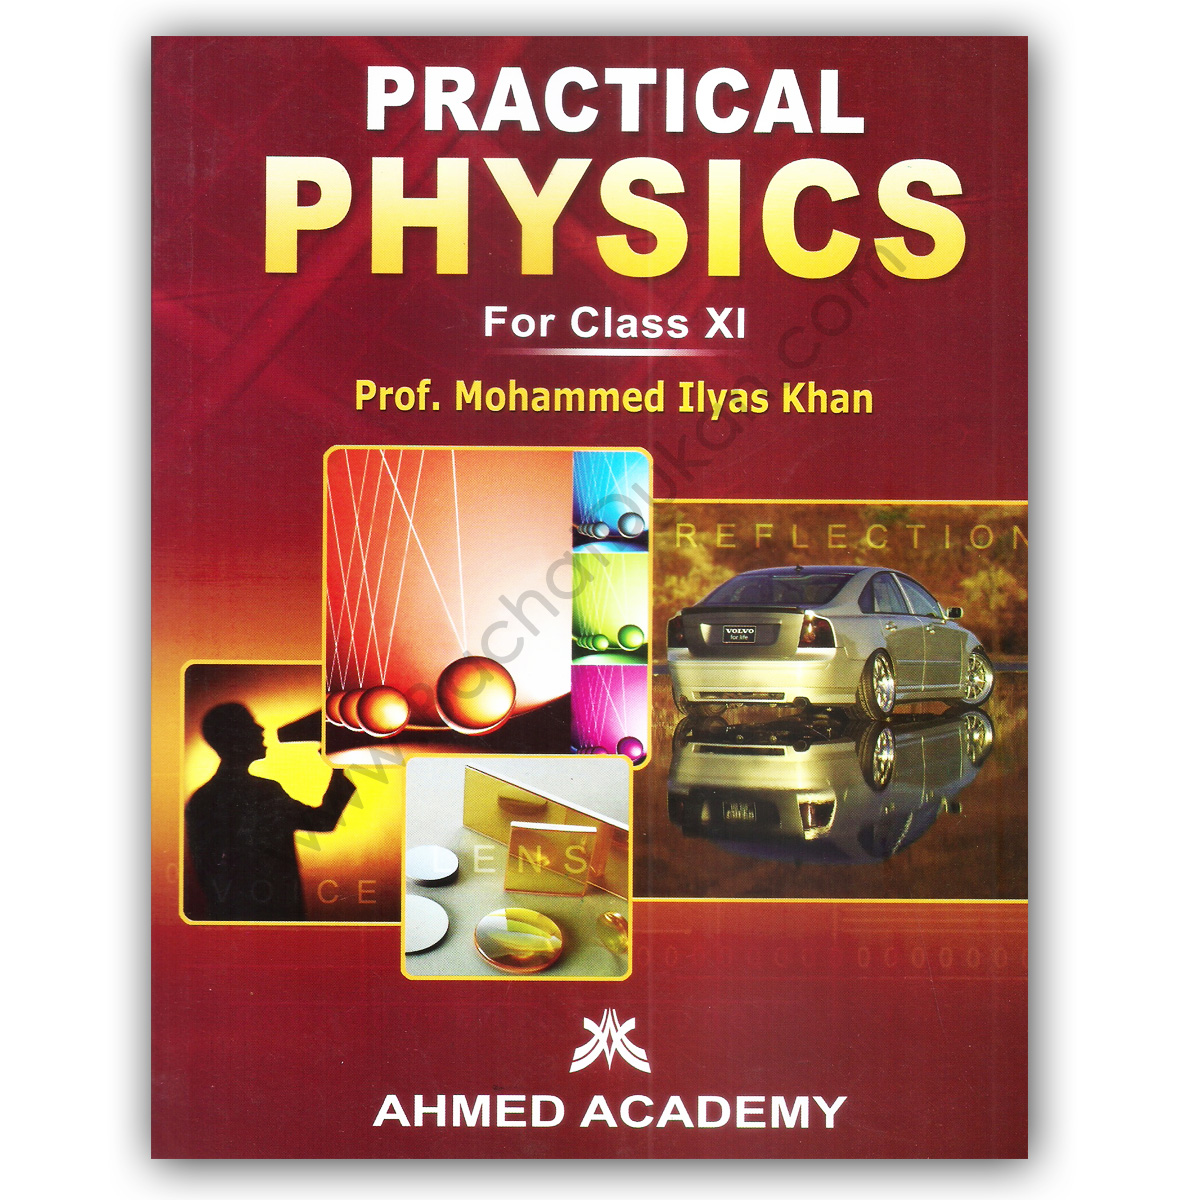 Practical PHYSICS For Class XI By Prof Muhammad Ilyas Khan - Ahmed Academy